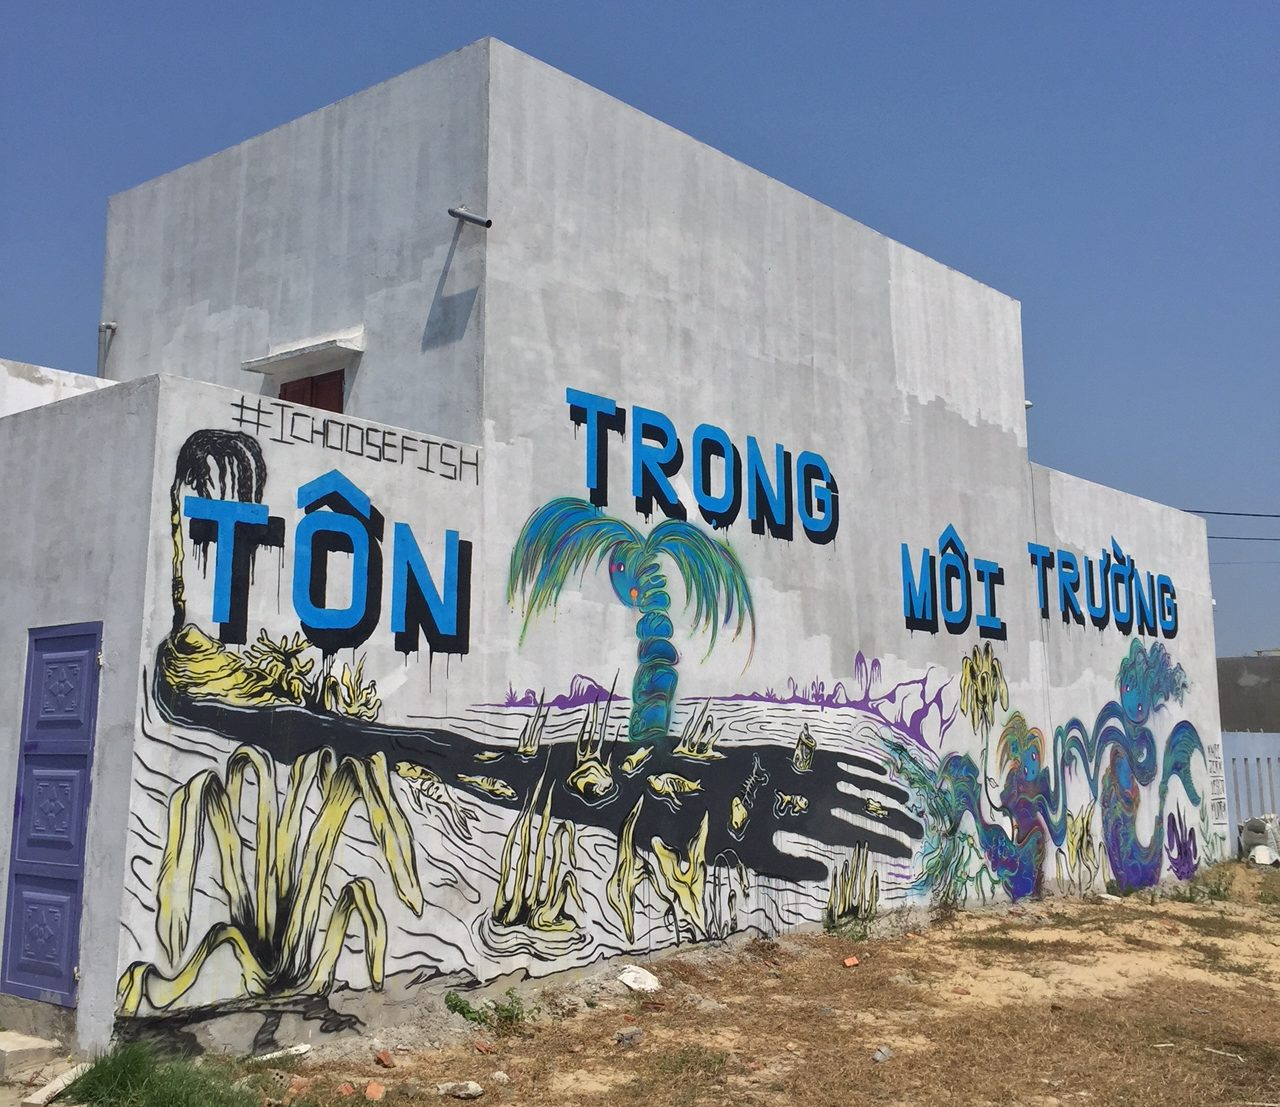 Image of the mural, courtesy the artist.